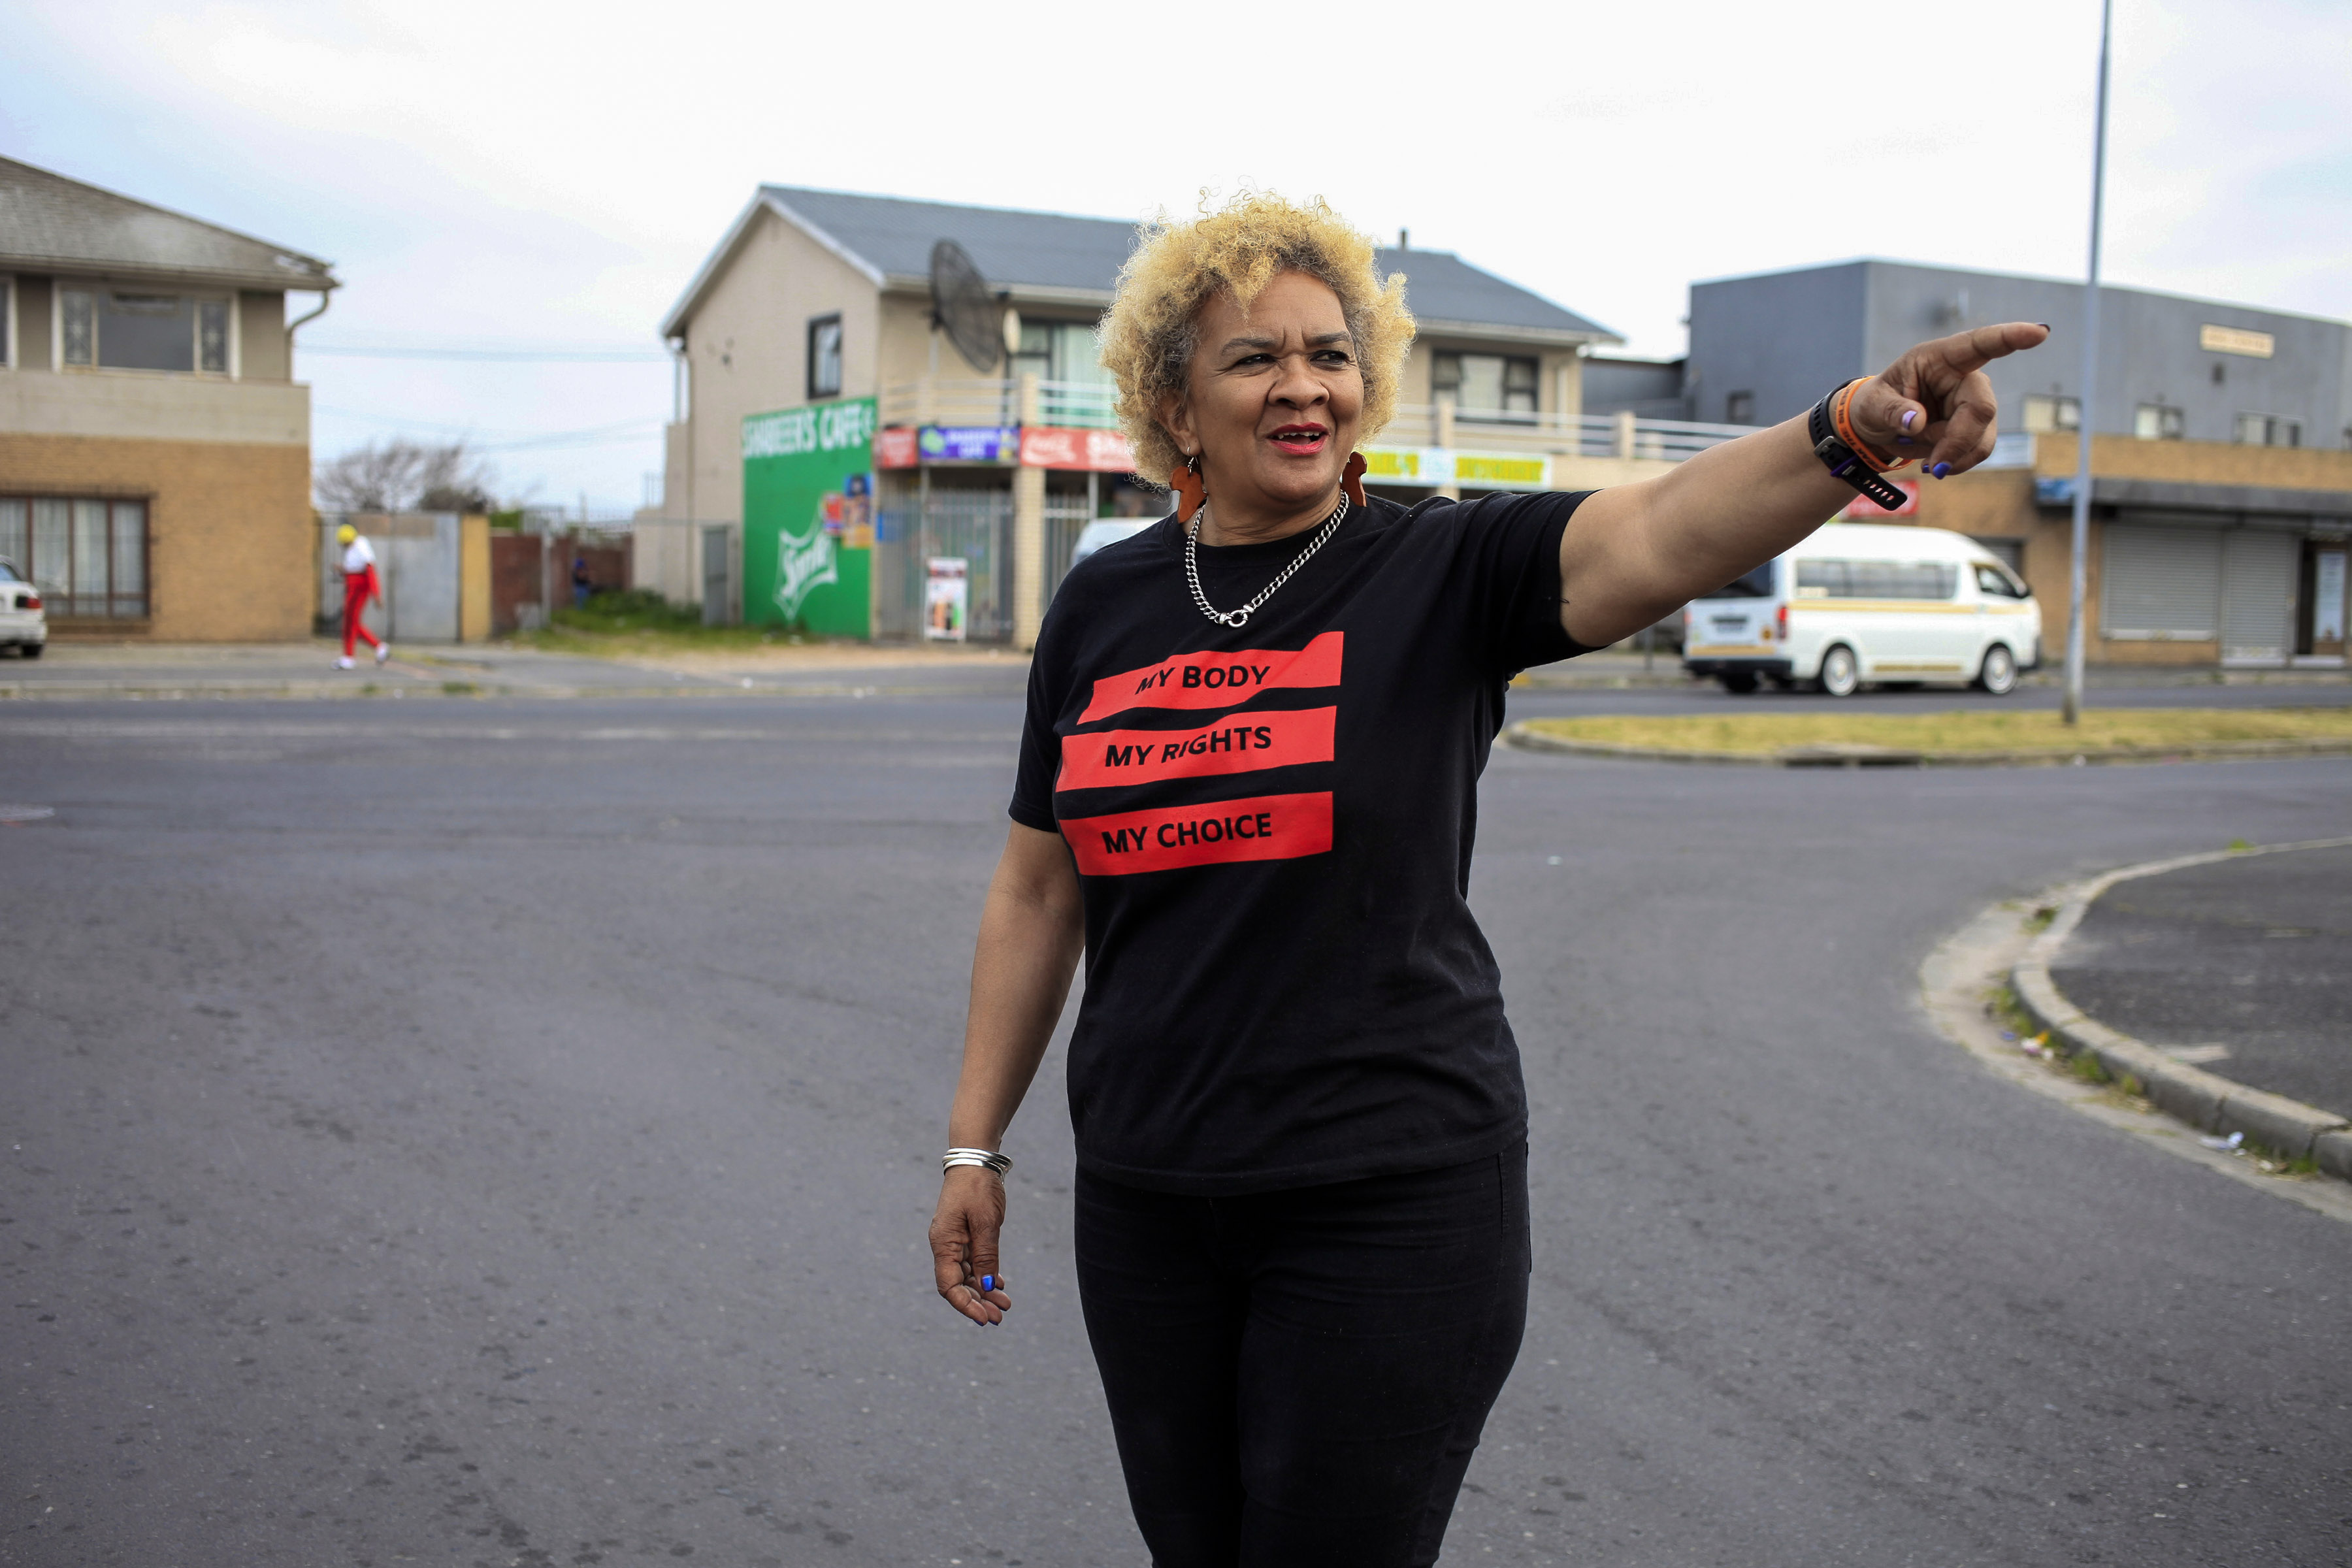 9 September 2019: Caroline Peters walking in Bridgetown, Cape Town. Their area has a rich anti-apartheid history born from the injustice of the regime's Group Areas Act.